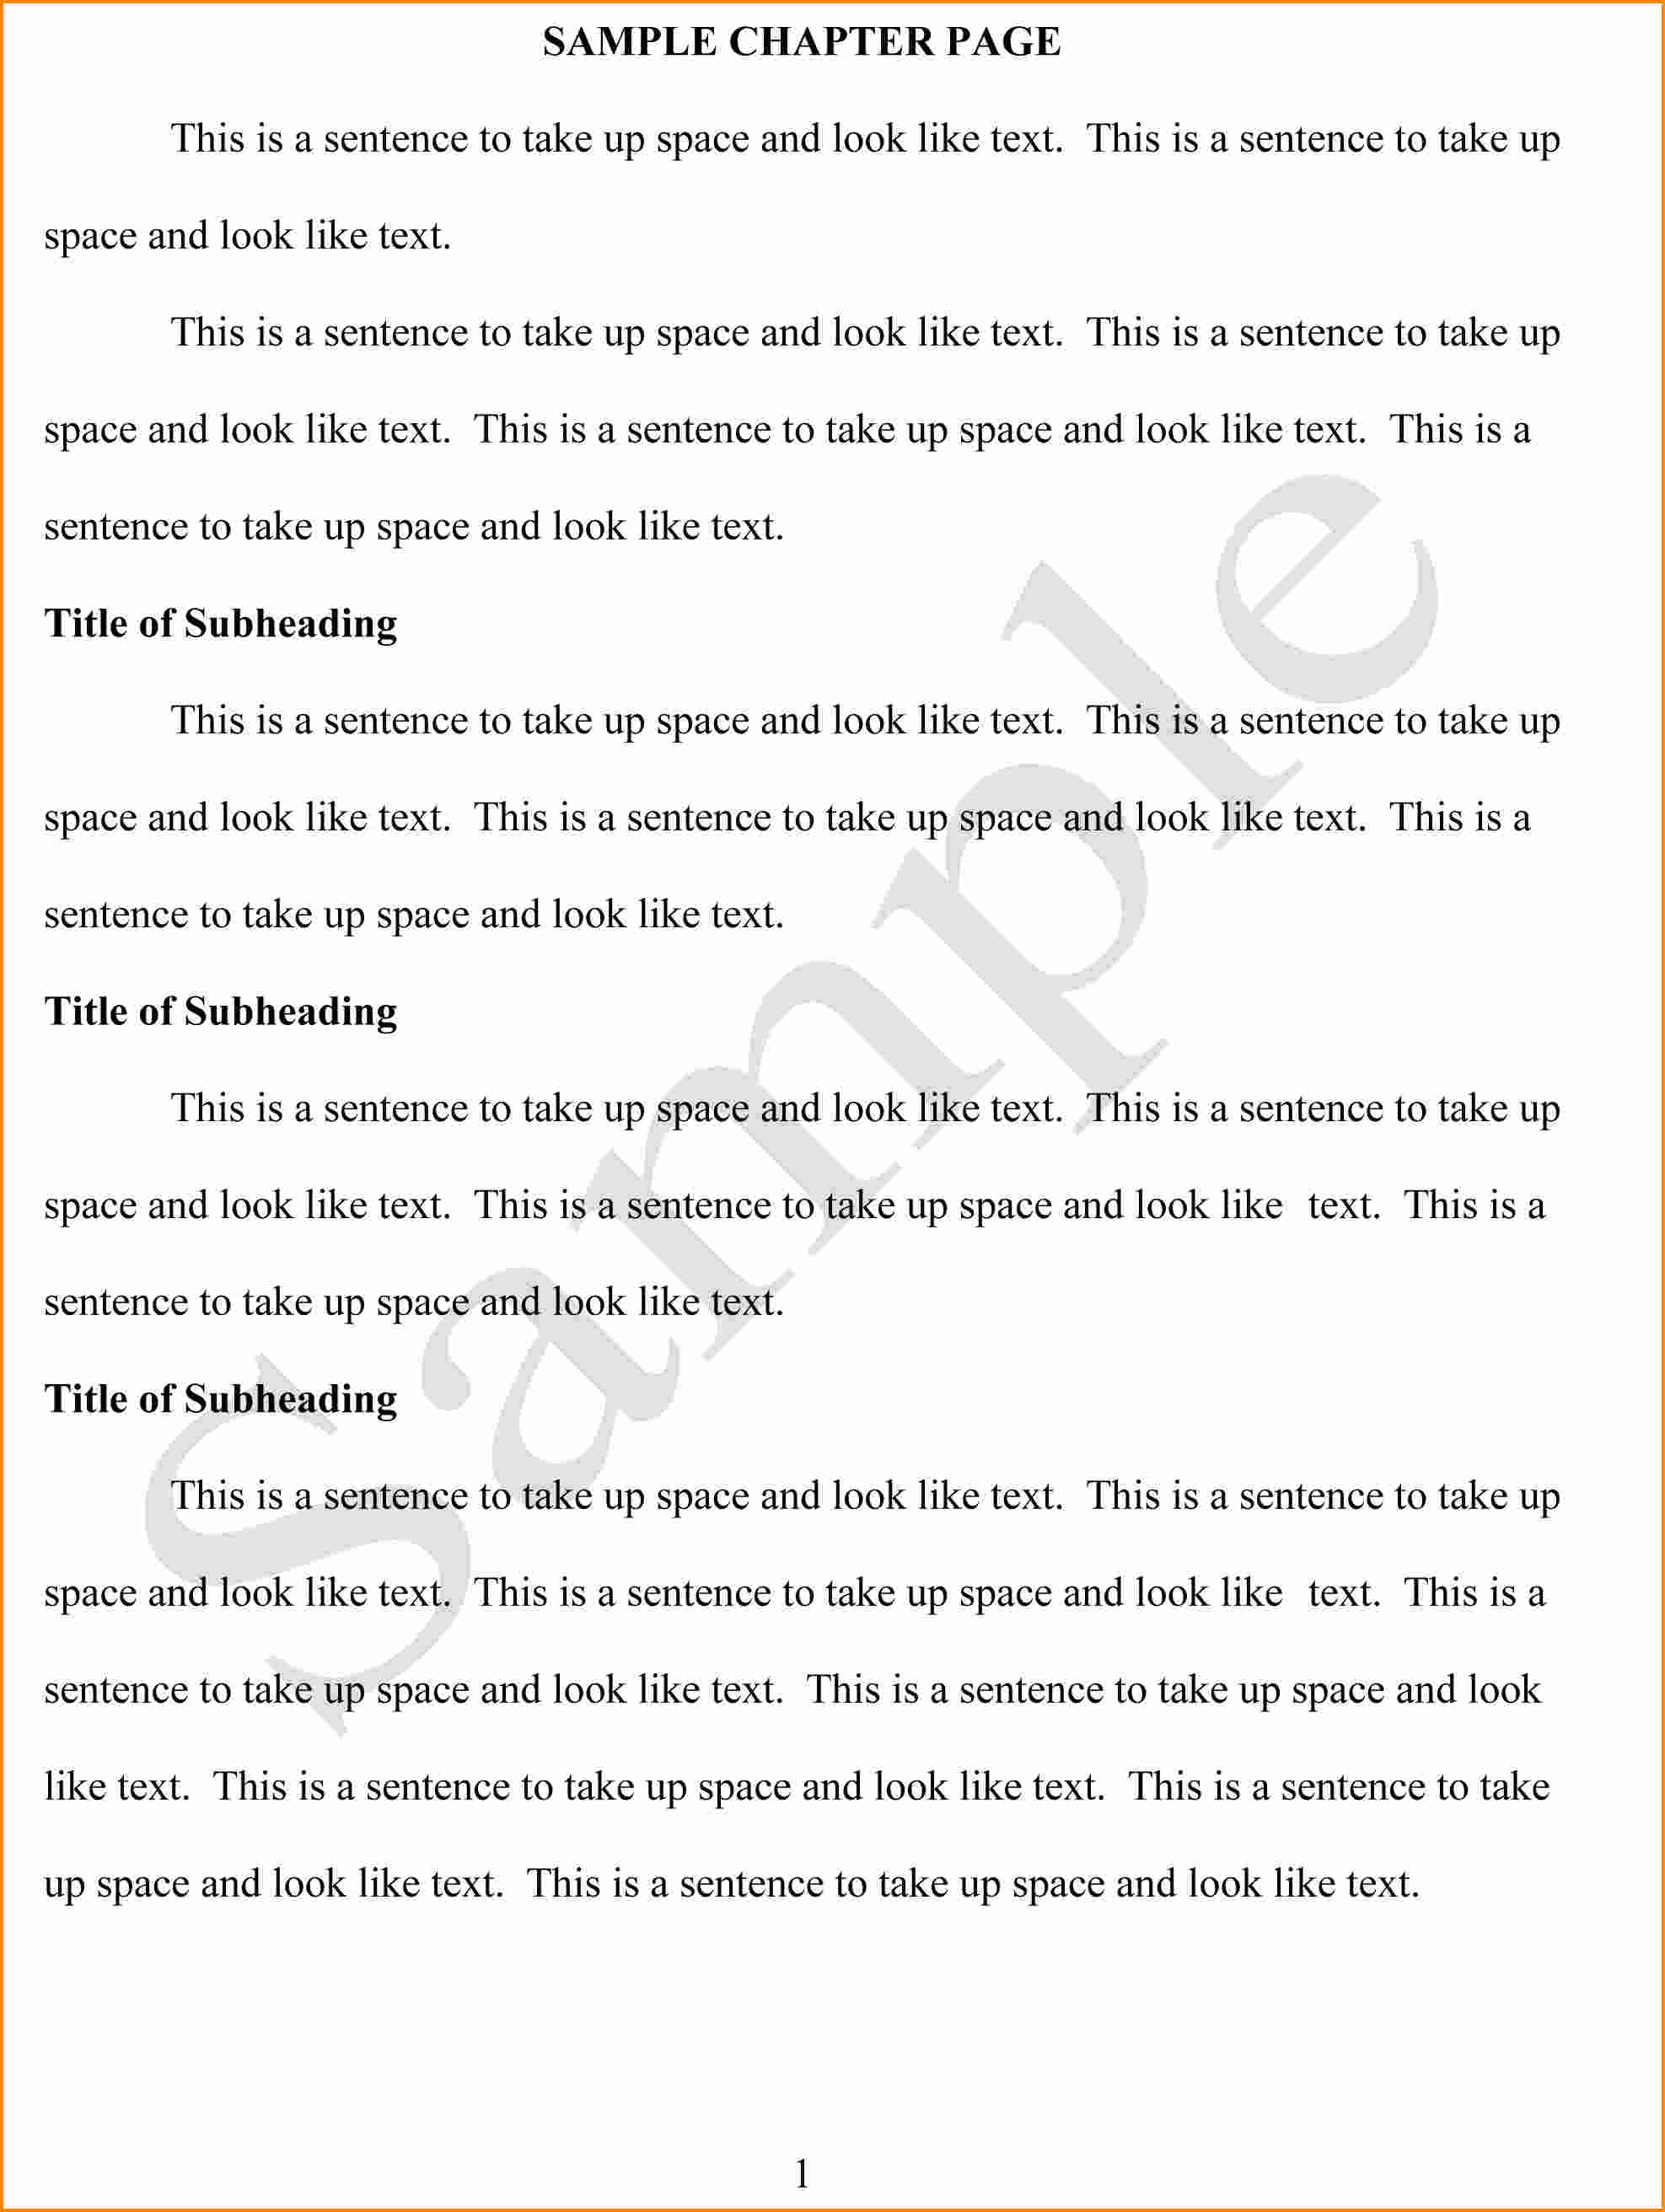 006 Thesis Essay Bullying About In Schools Format Of Persuasive On High School Application Samples Example Amazing The Cause And Effect Cyberbullying Full